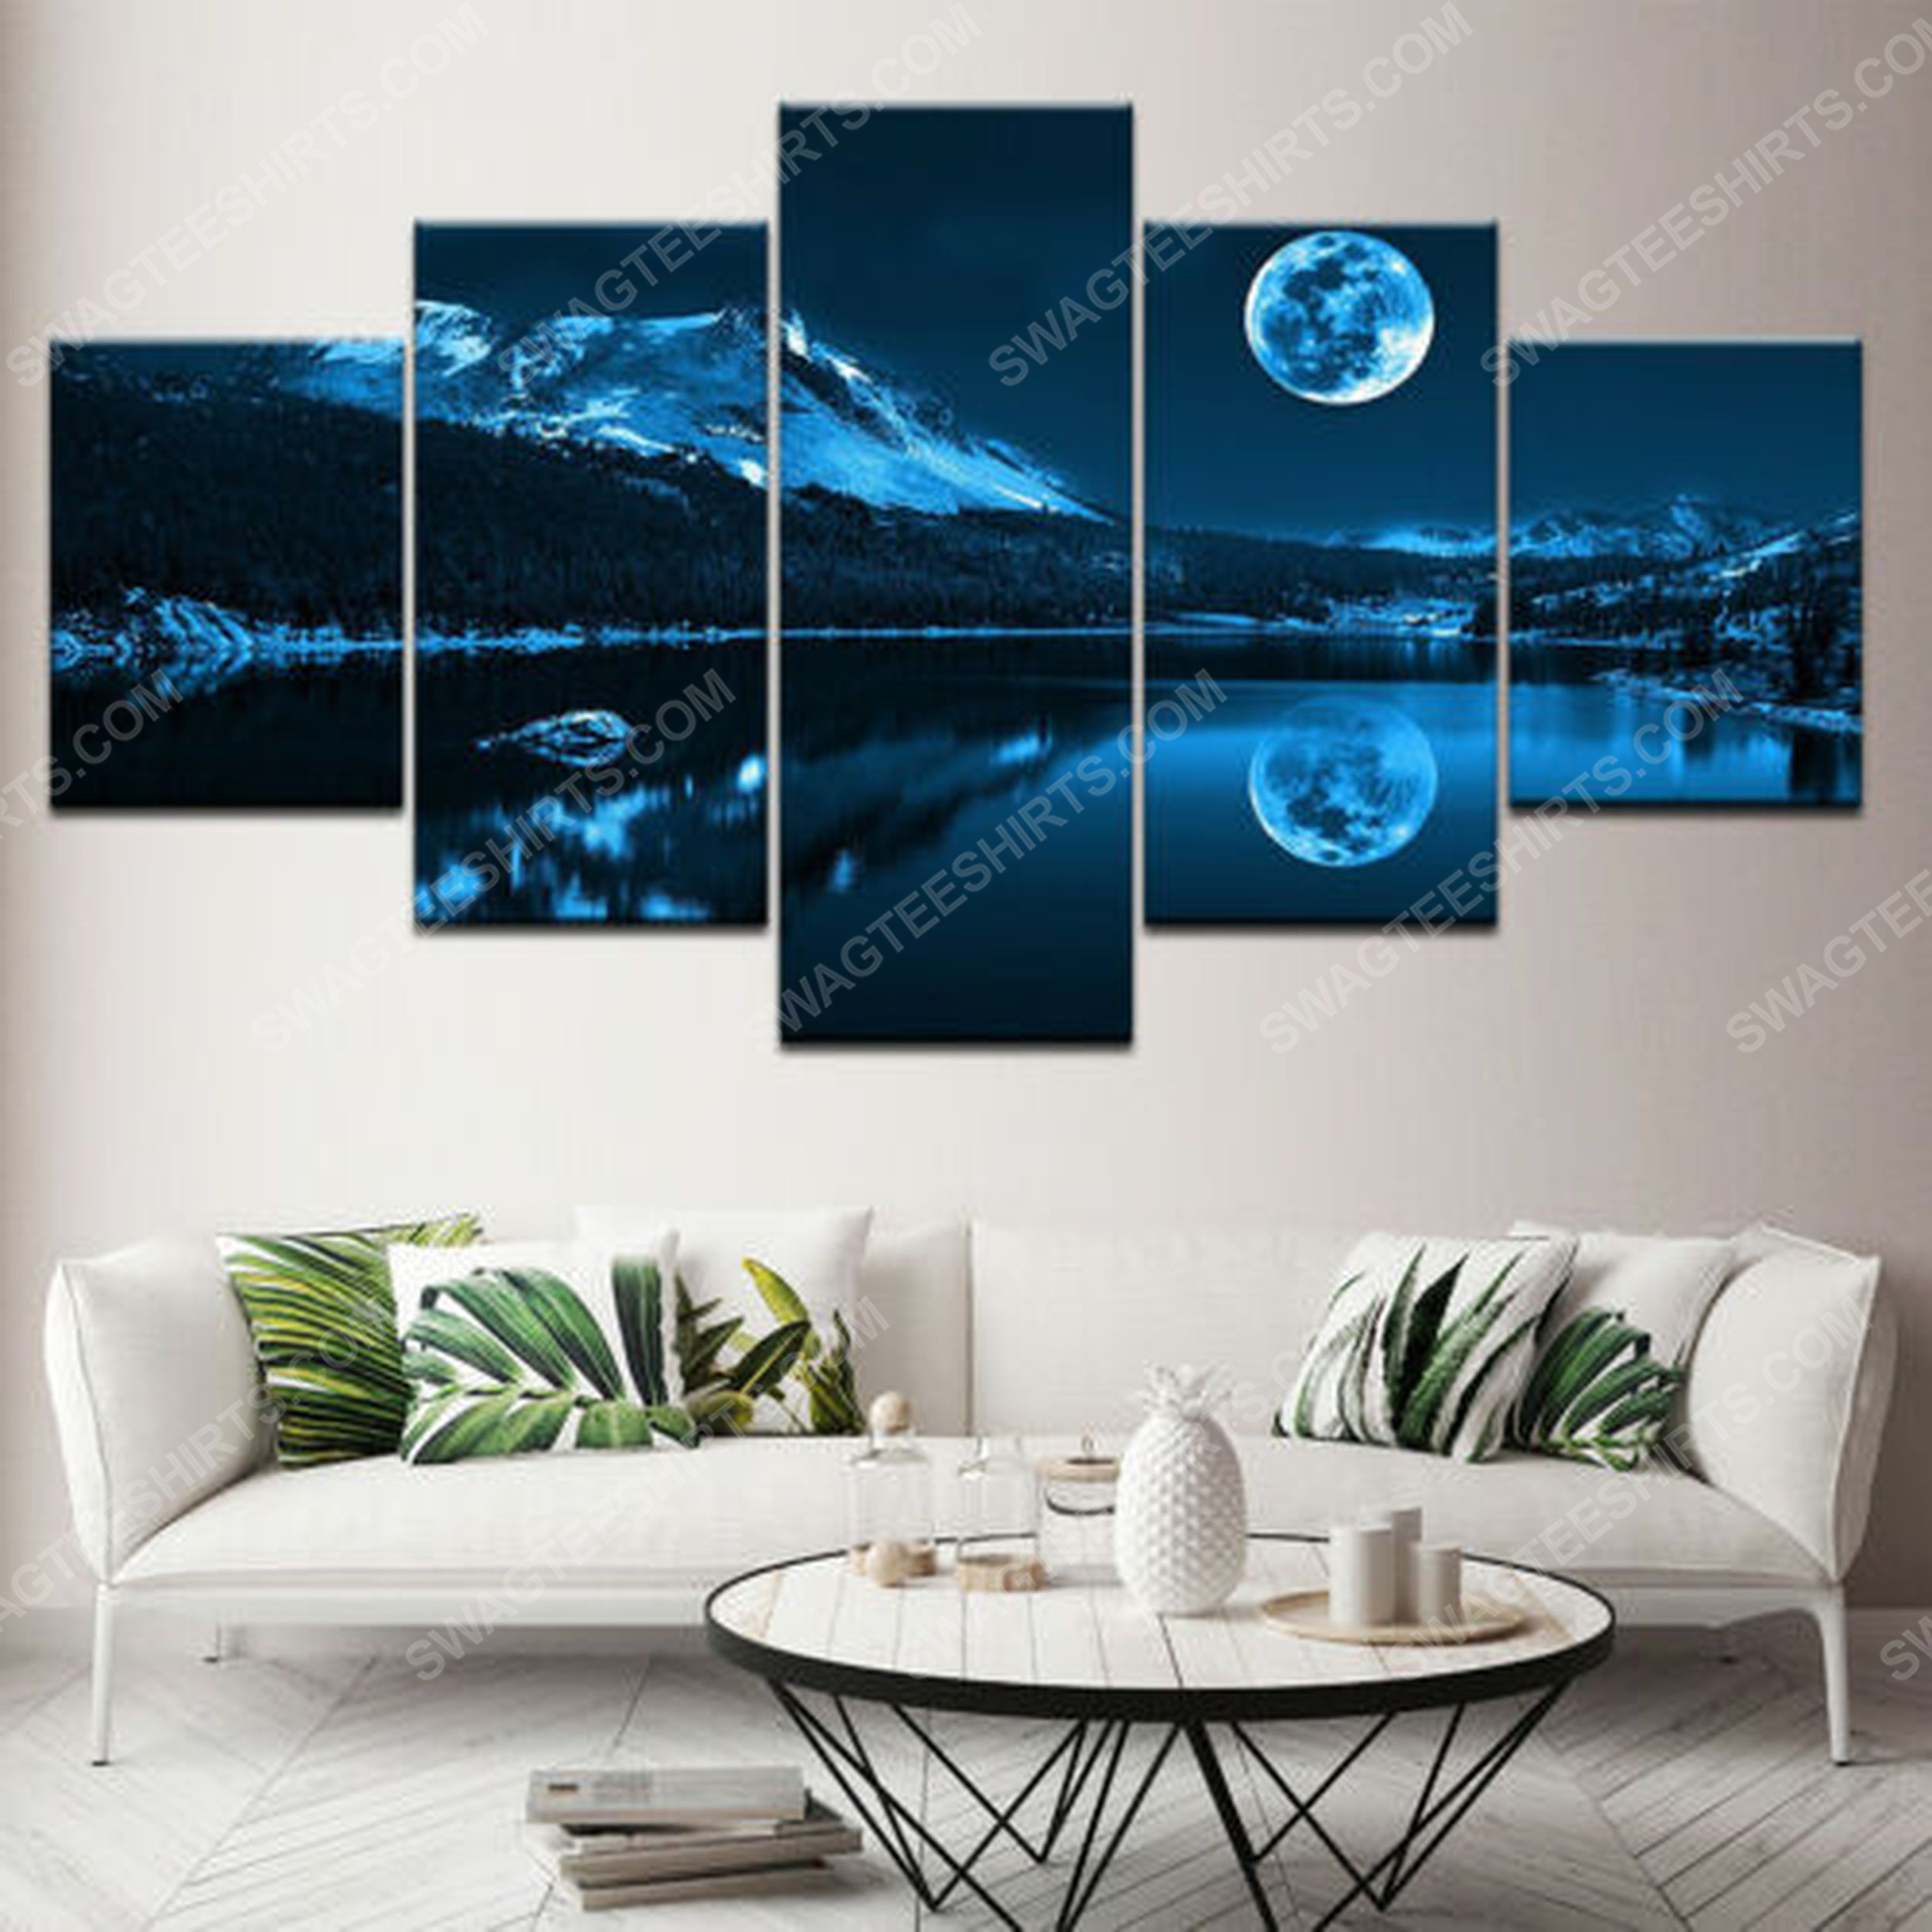 Blue moon and night scene print painting canvas wall art home decor